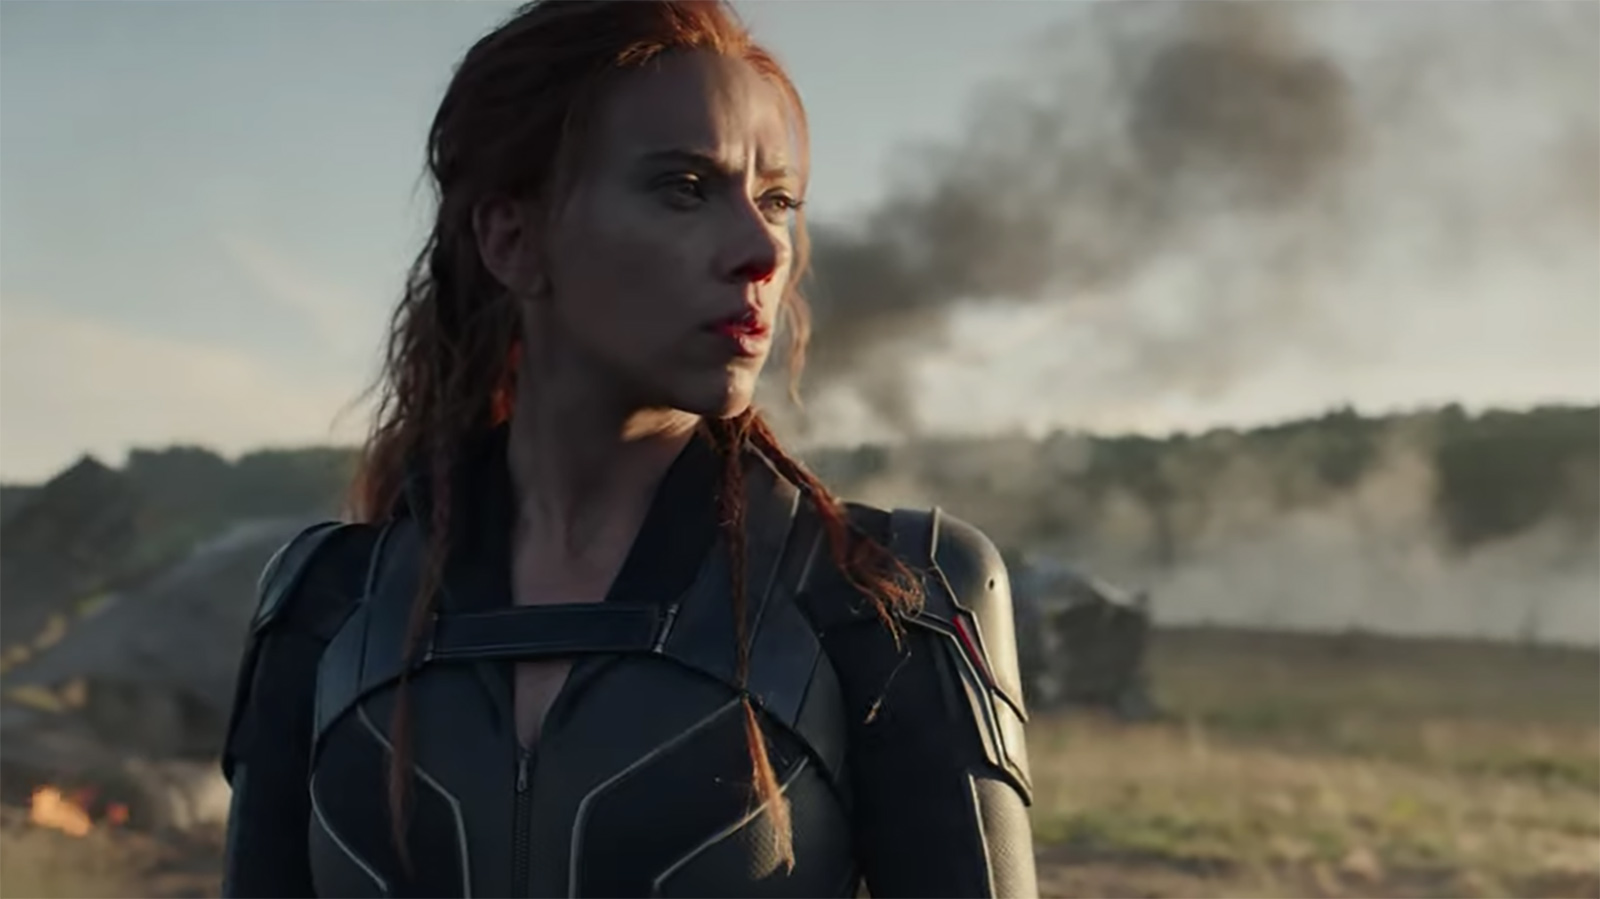 Picture of Scarlett Johansson as Black Widow